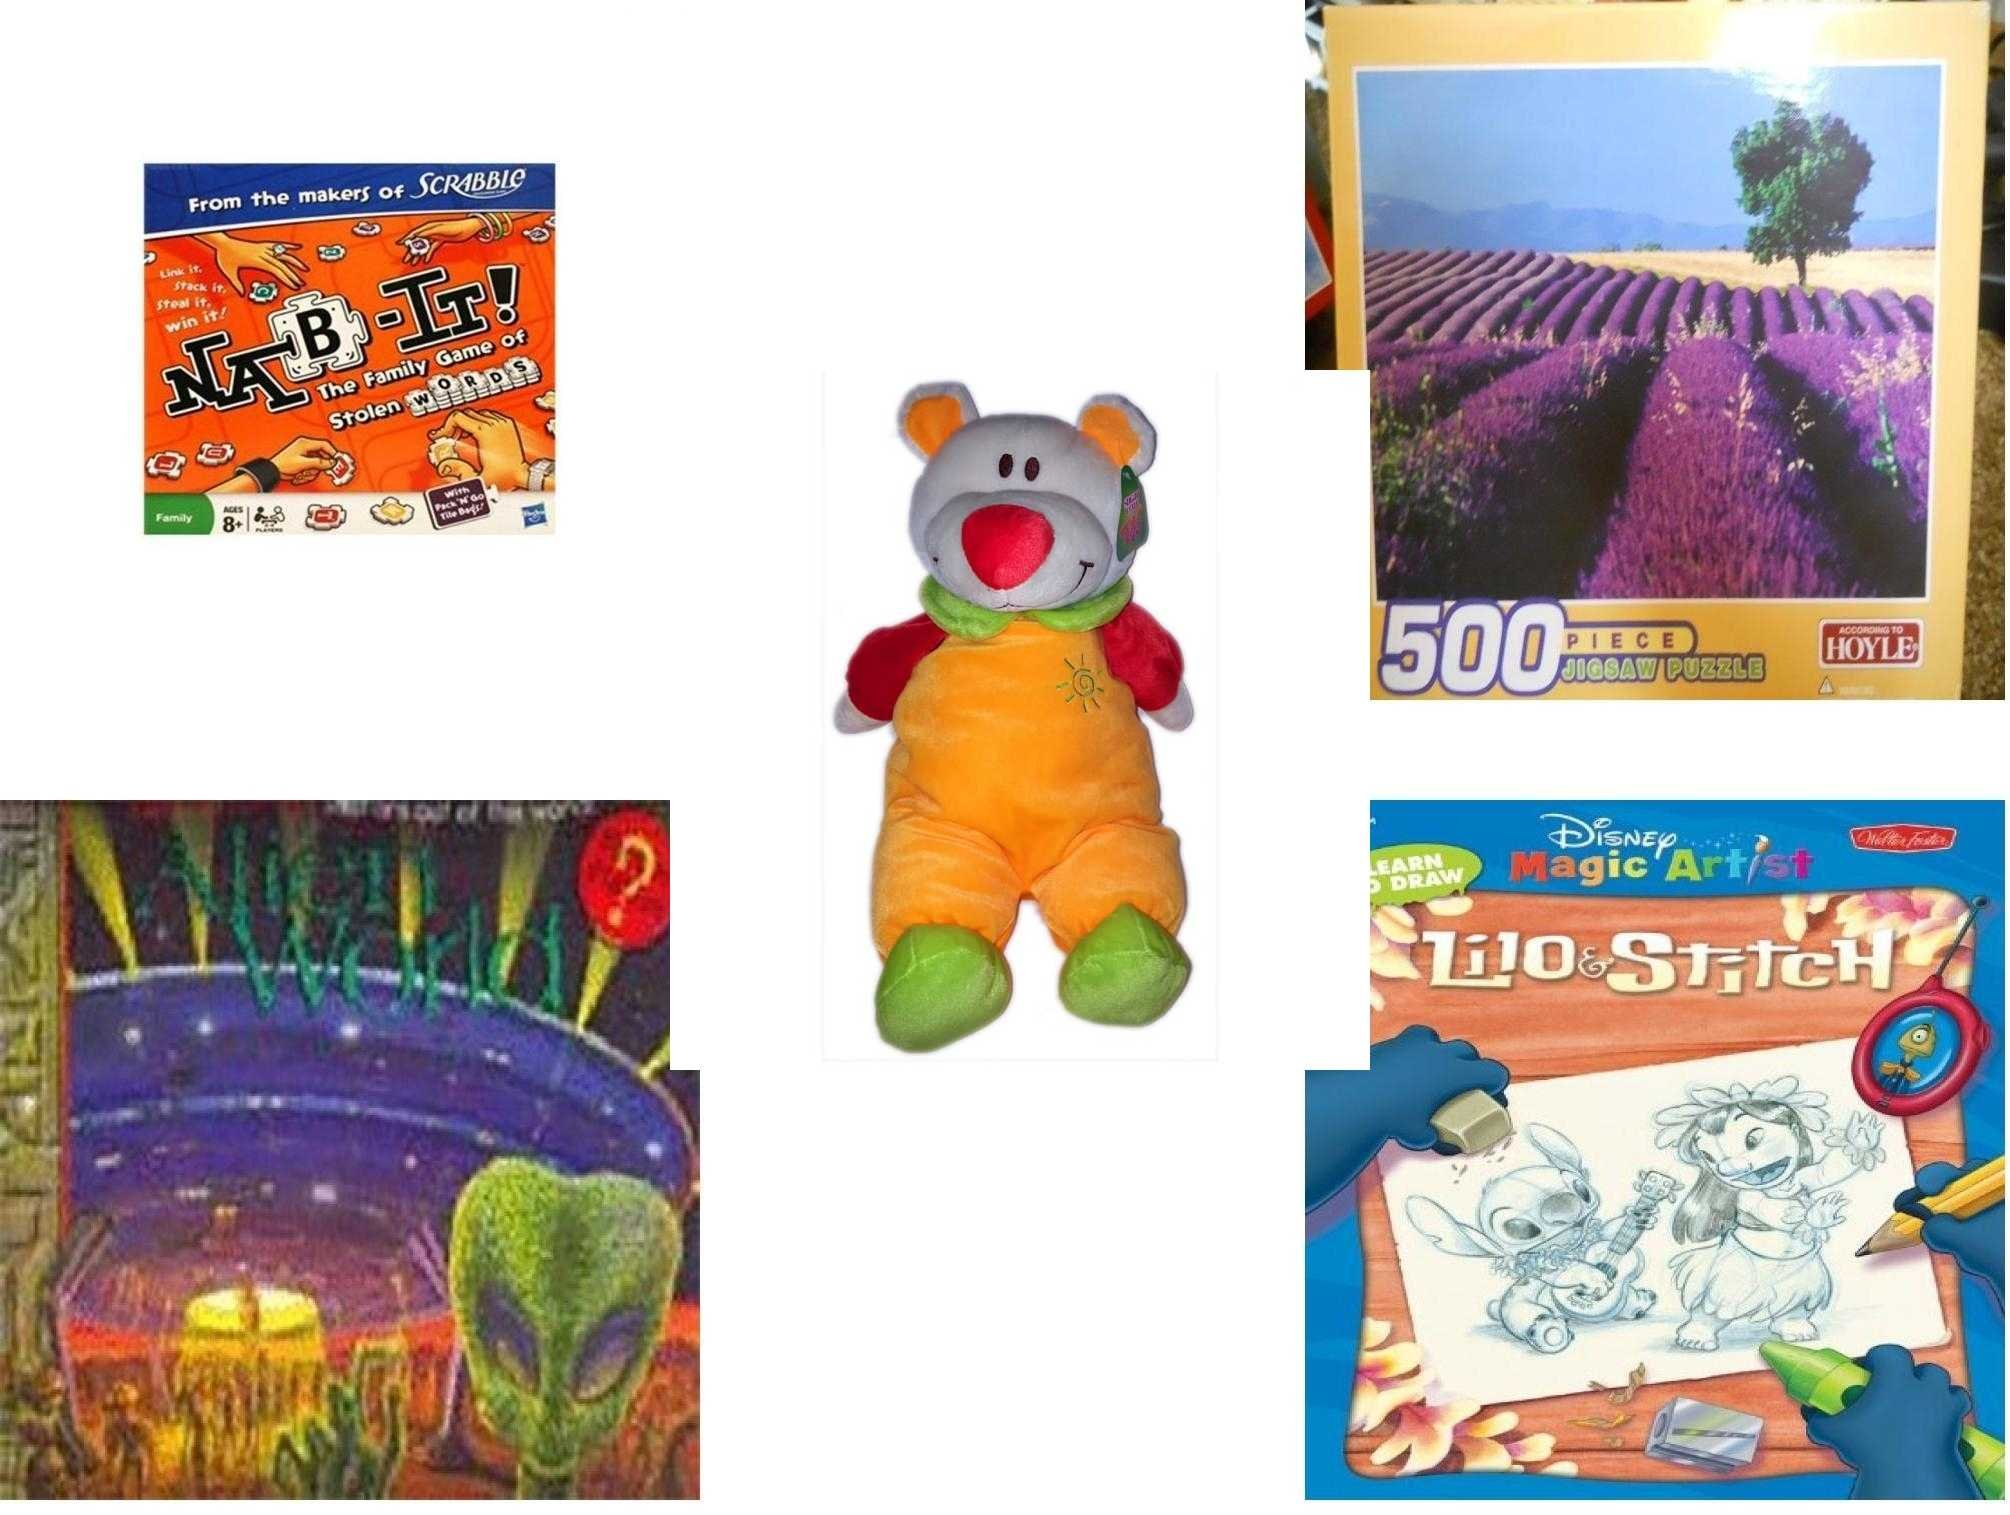 Children's Fun & Educational Gift Bundle - Ages 6-12 [5 Piece] - Includes: Game - Toy - Plush - Hardcover Book - Paperback Book - No. dbund-6-12-30586